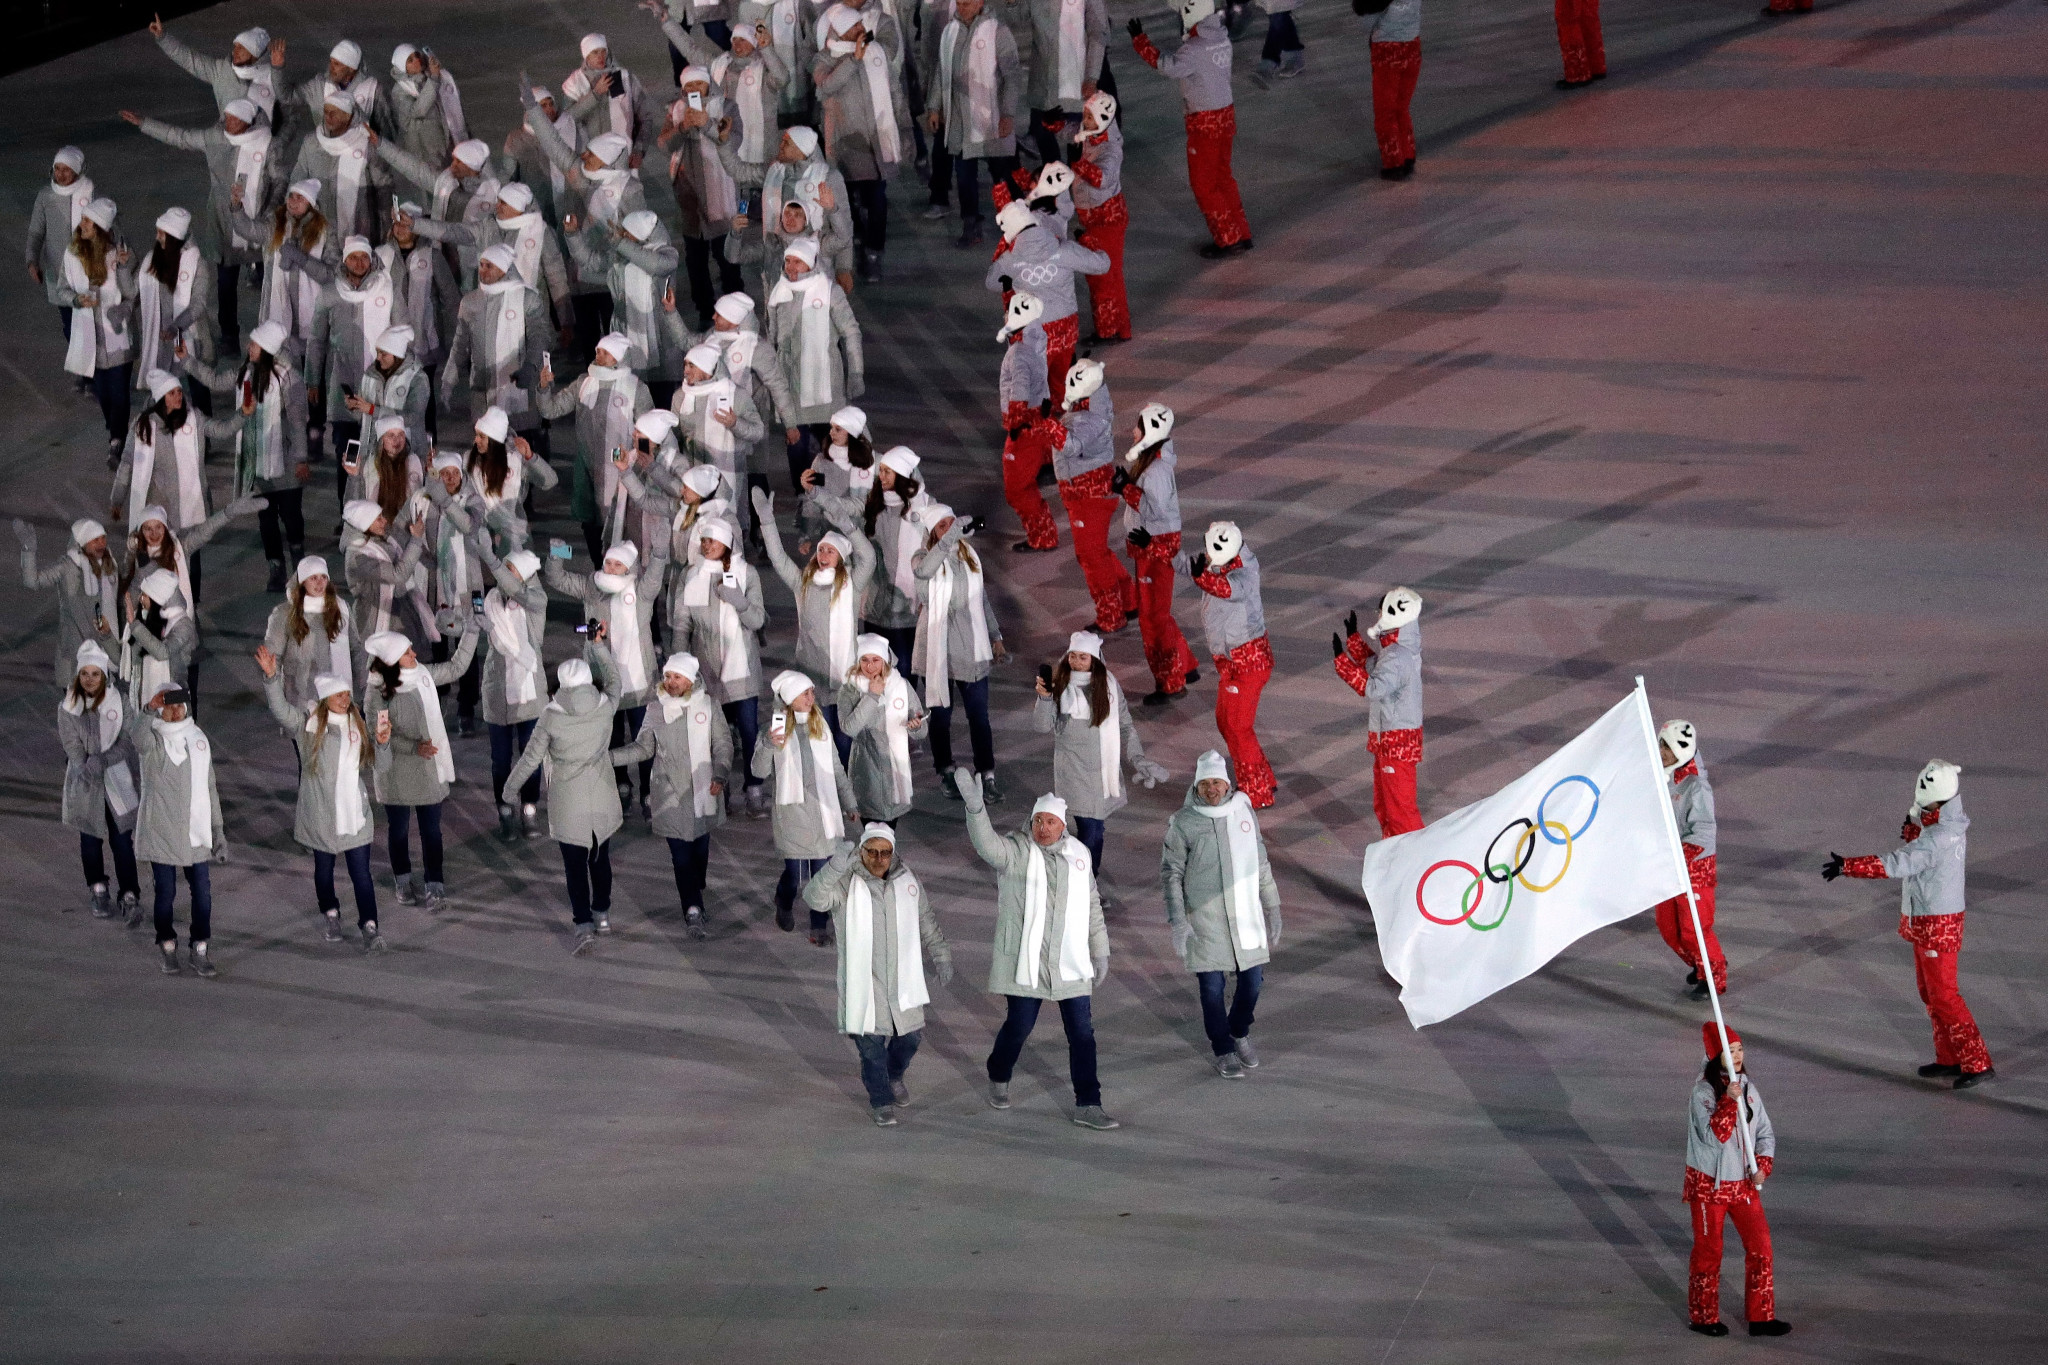 Russian athletes marched under the IOC flag at the Opening Ceremony of Pyeongchang 2018, but could be free to use their own one at the Closing Ceremony ©Getty Images